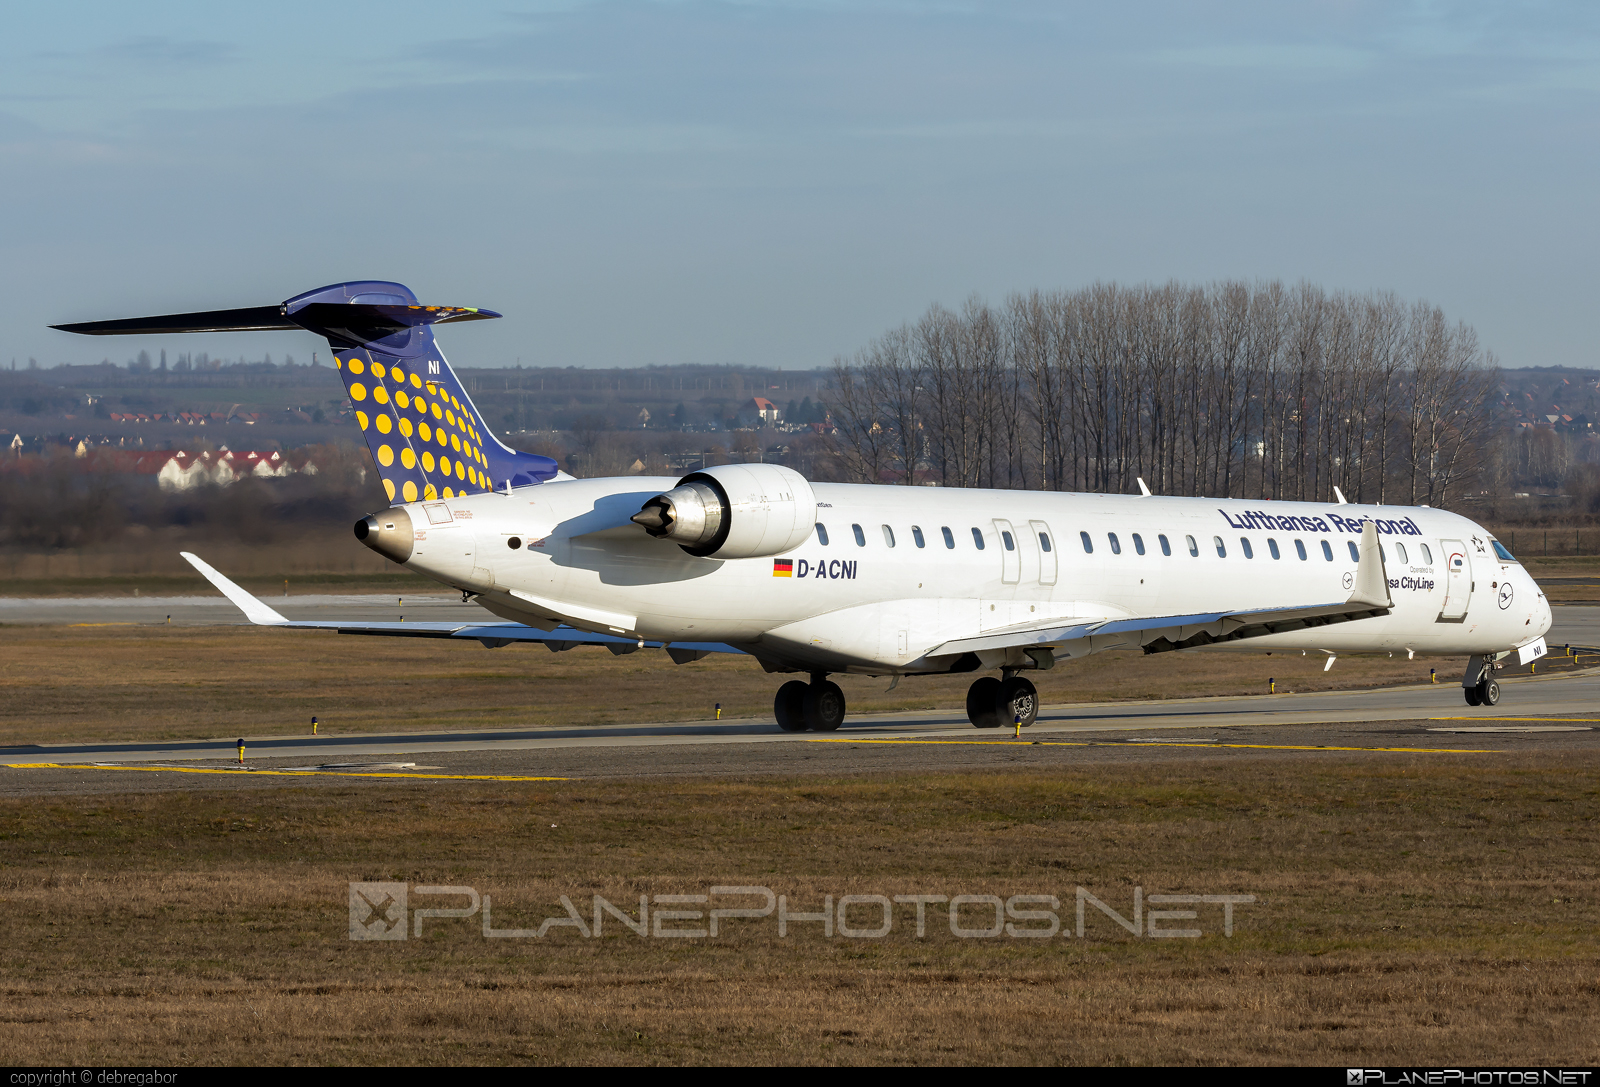 Bombardier CRJ900LR - D-ACNI operated by Lufthansa CityLine #bombardier #crj900 #crj900lr #lufthansa #lufthansacityline